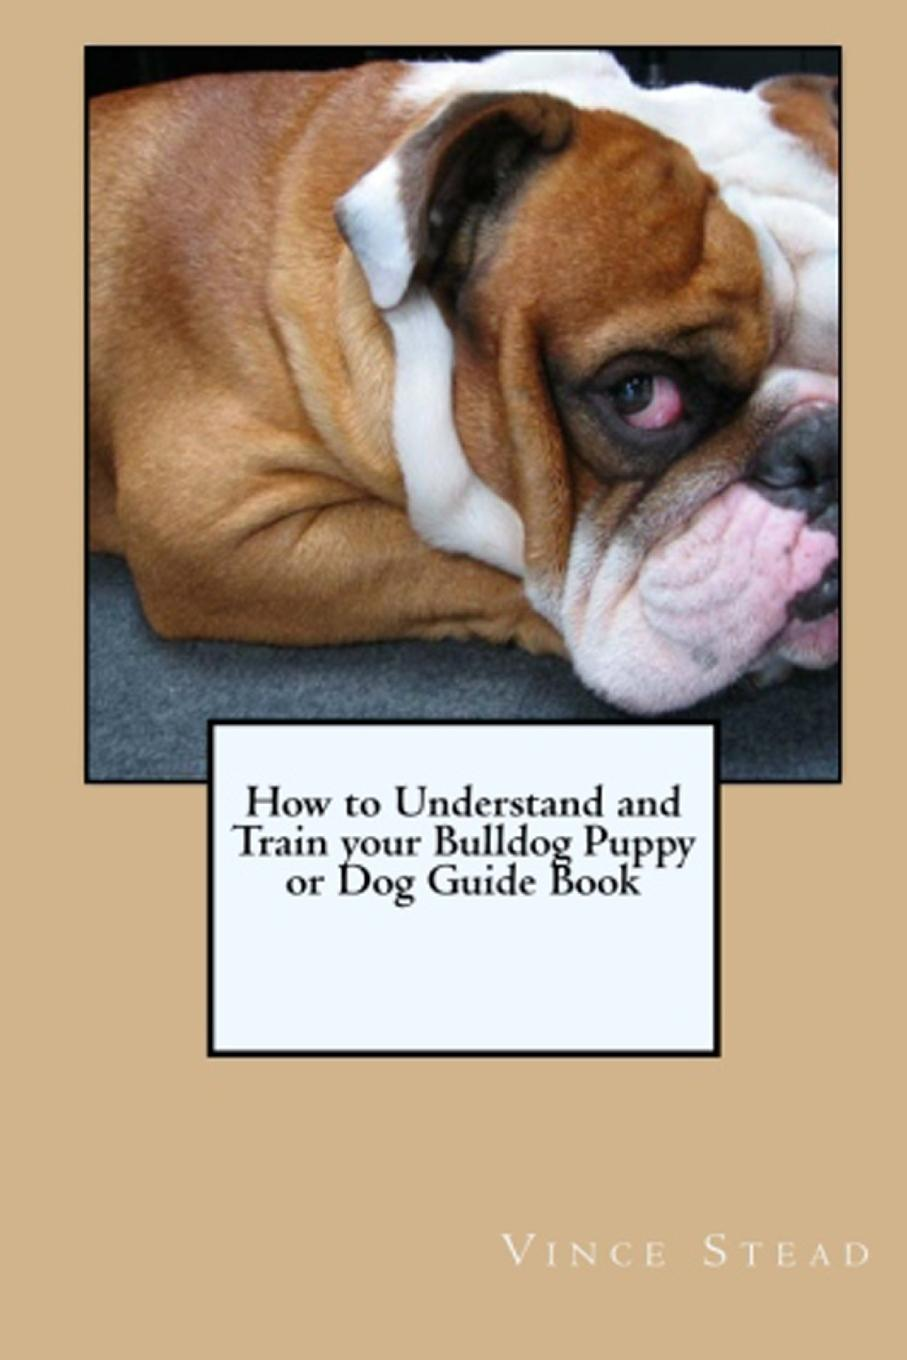 Vince Stead How to Understand and Train your Bulldog Puppy or Dog Guide Book vince stead how to understand and train your golden retriever puppy or dog